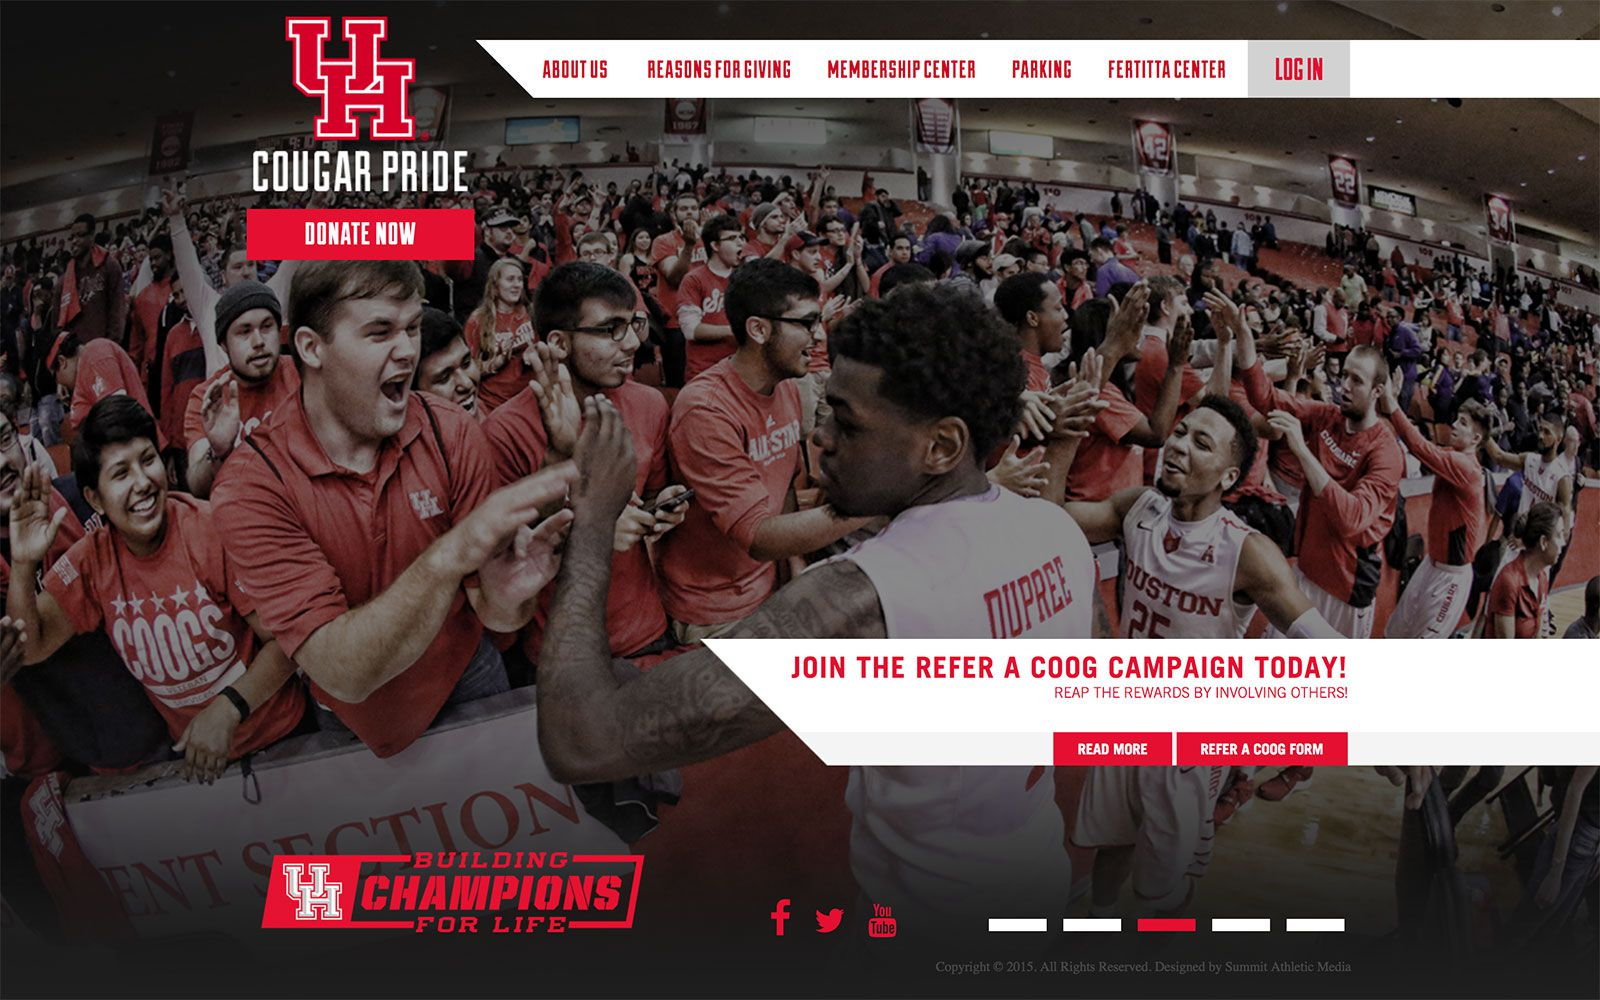 Cougar Pride Fundraising Website | <a href='http://uhcougarpride.com/' target='_blank'>Visit Site <i class='nc-icon-glyph arrows-1_share-91'></i></a><br><span>University of Houston</span>